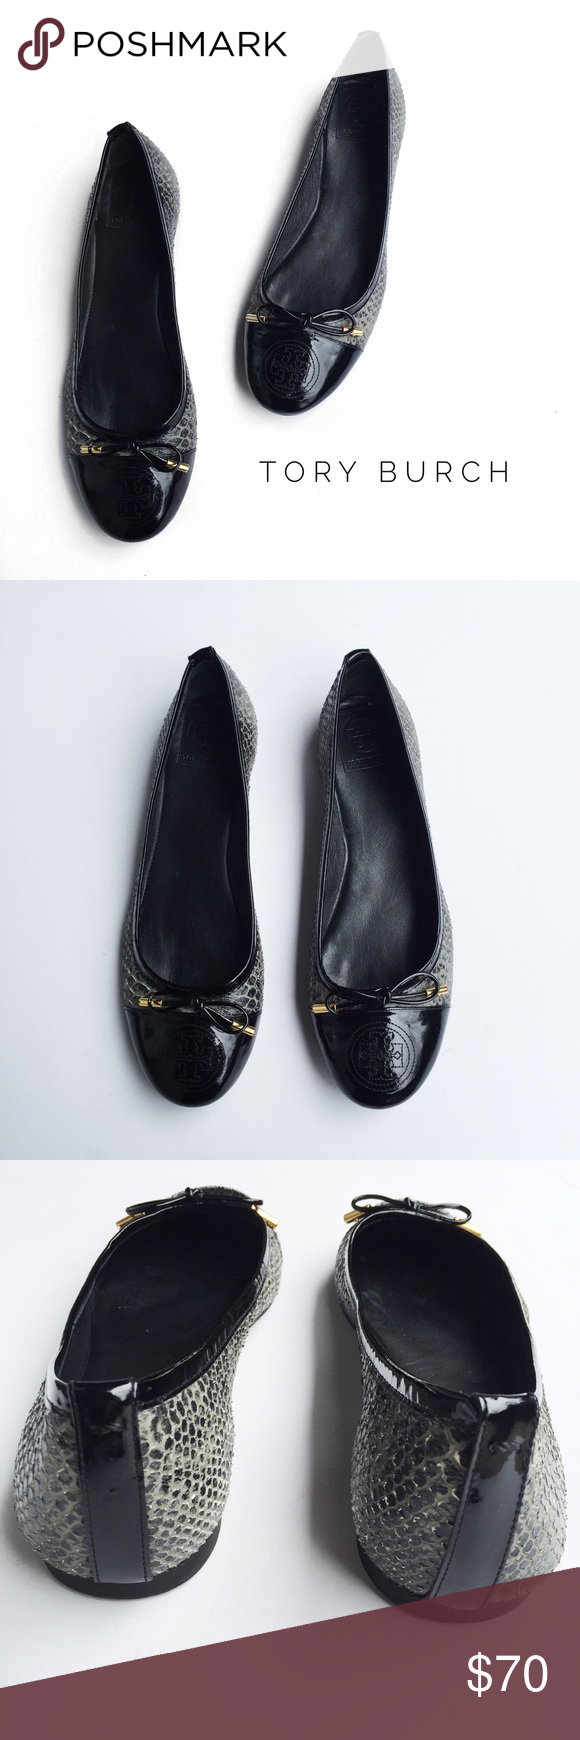 • tory burch snake skin flats • condition: pre-owned. these are in great condition with very minor wear. exterior is in great condition with minor scuffing to right toe as shown in picture 7. interior has minor wear as shown in picture 6. Tory Burch Shoes Flats & Loafers